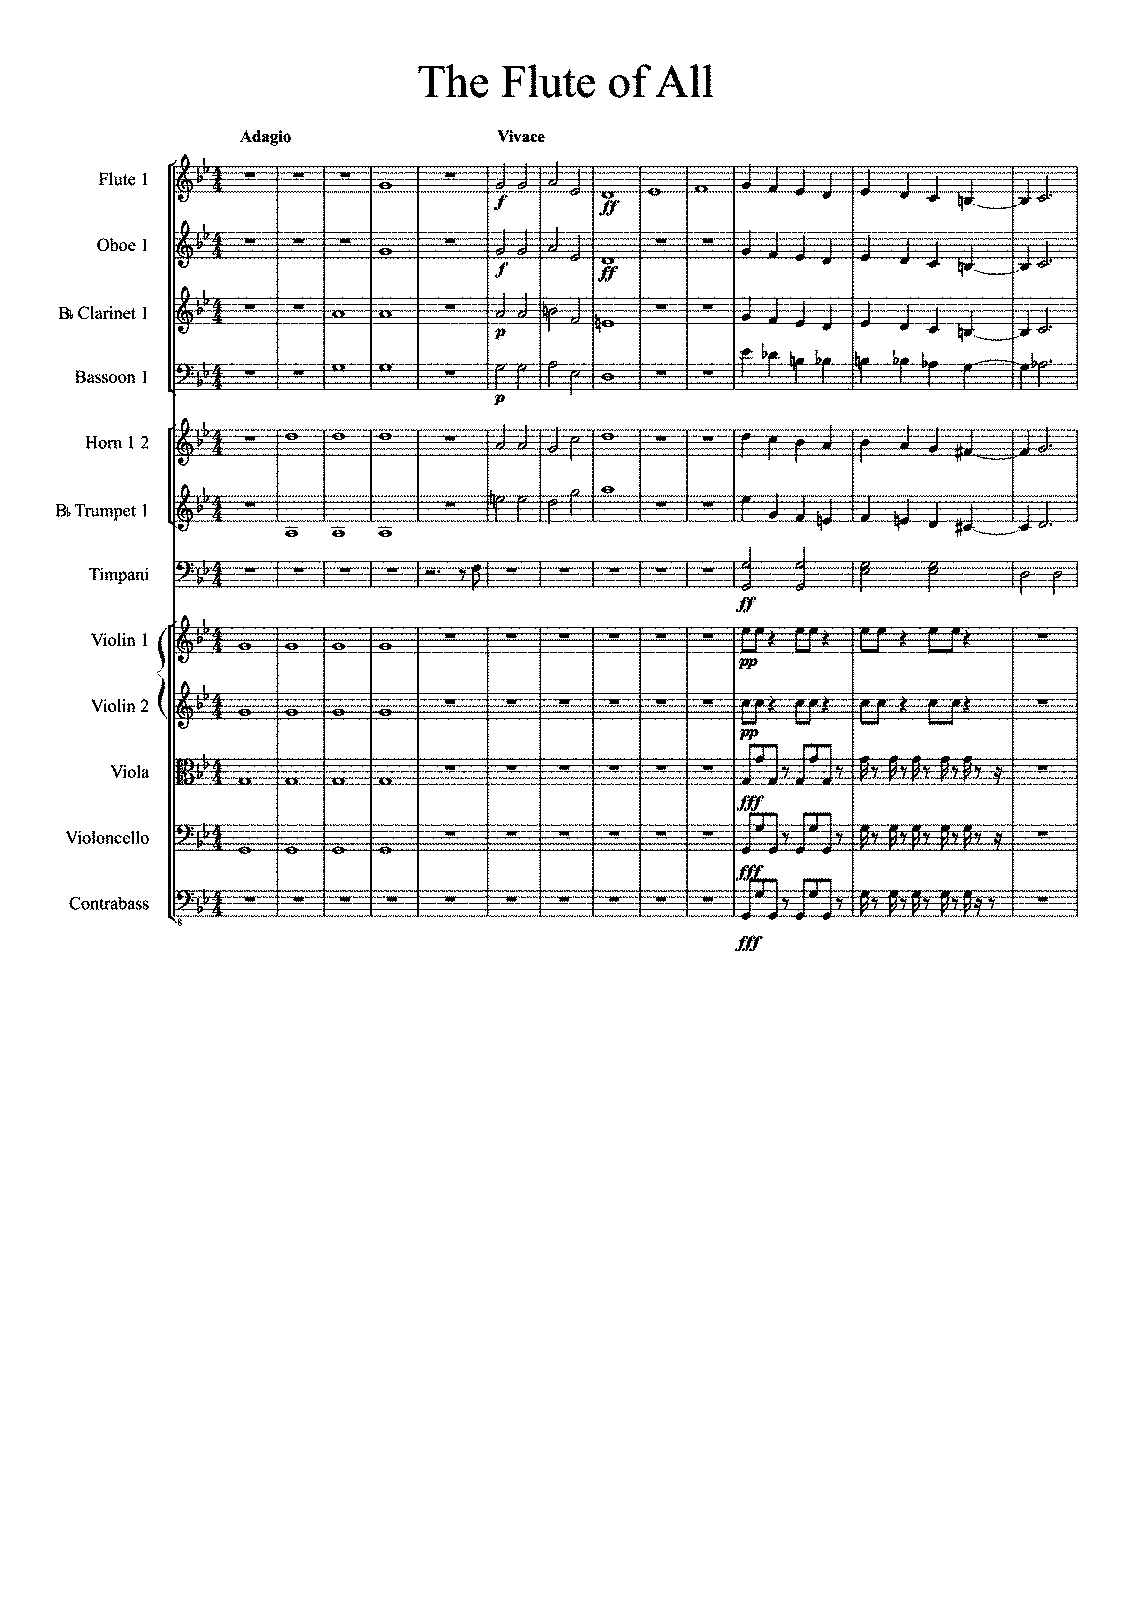 PMLP187679-The Flute of all.pdf